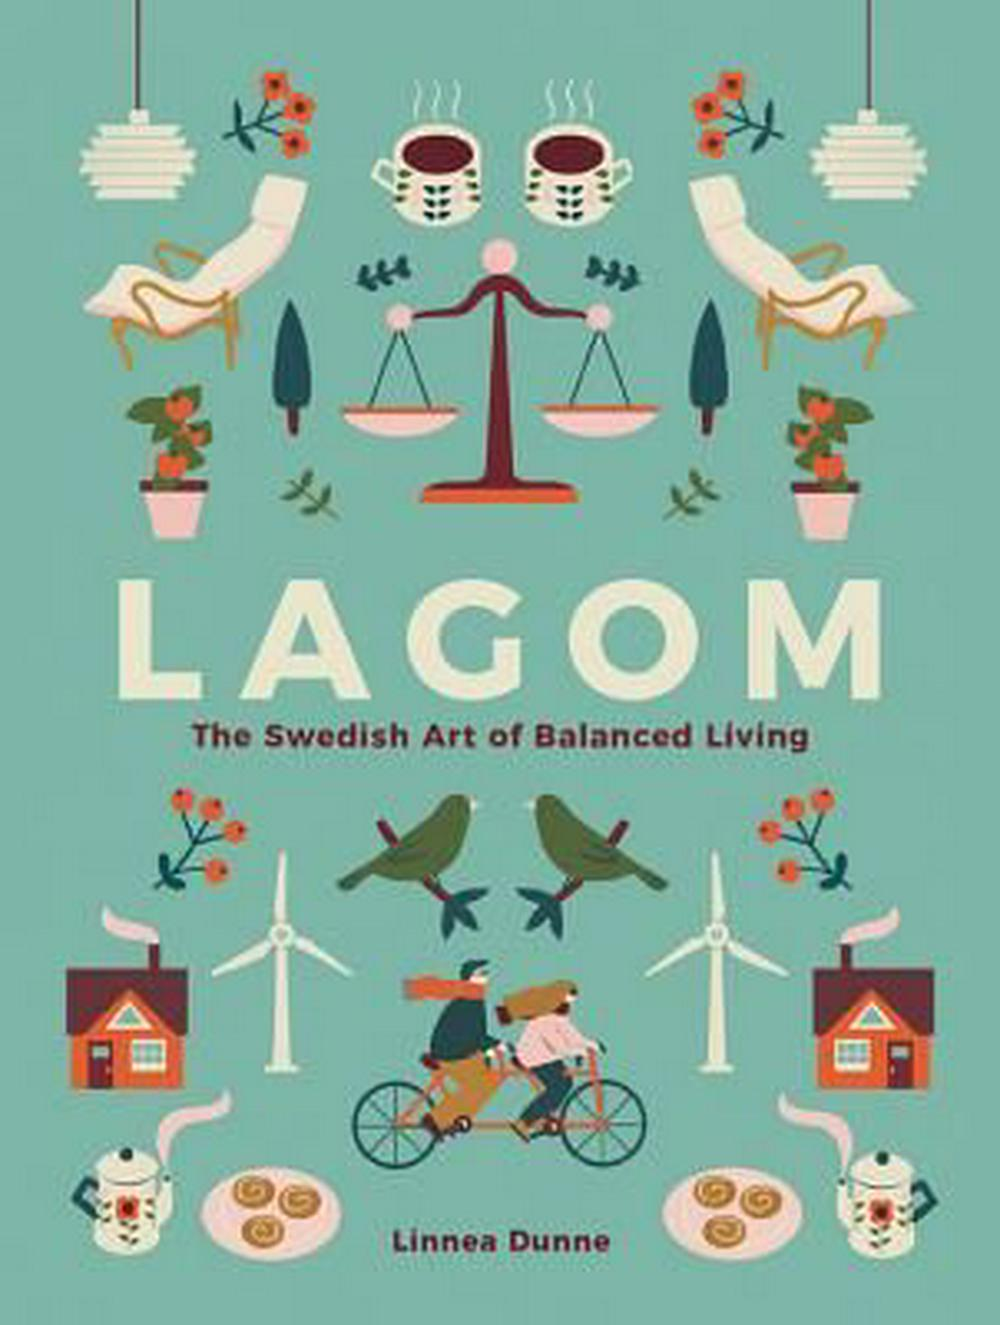 Lagom: The Swedish Art of Balanced Living by Linnea Dunne, ISBN: 9780762463756